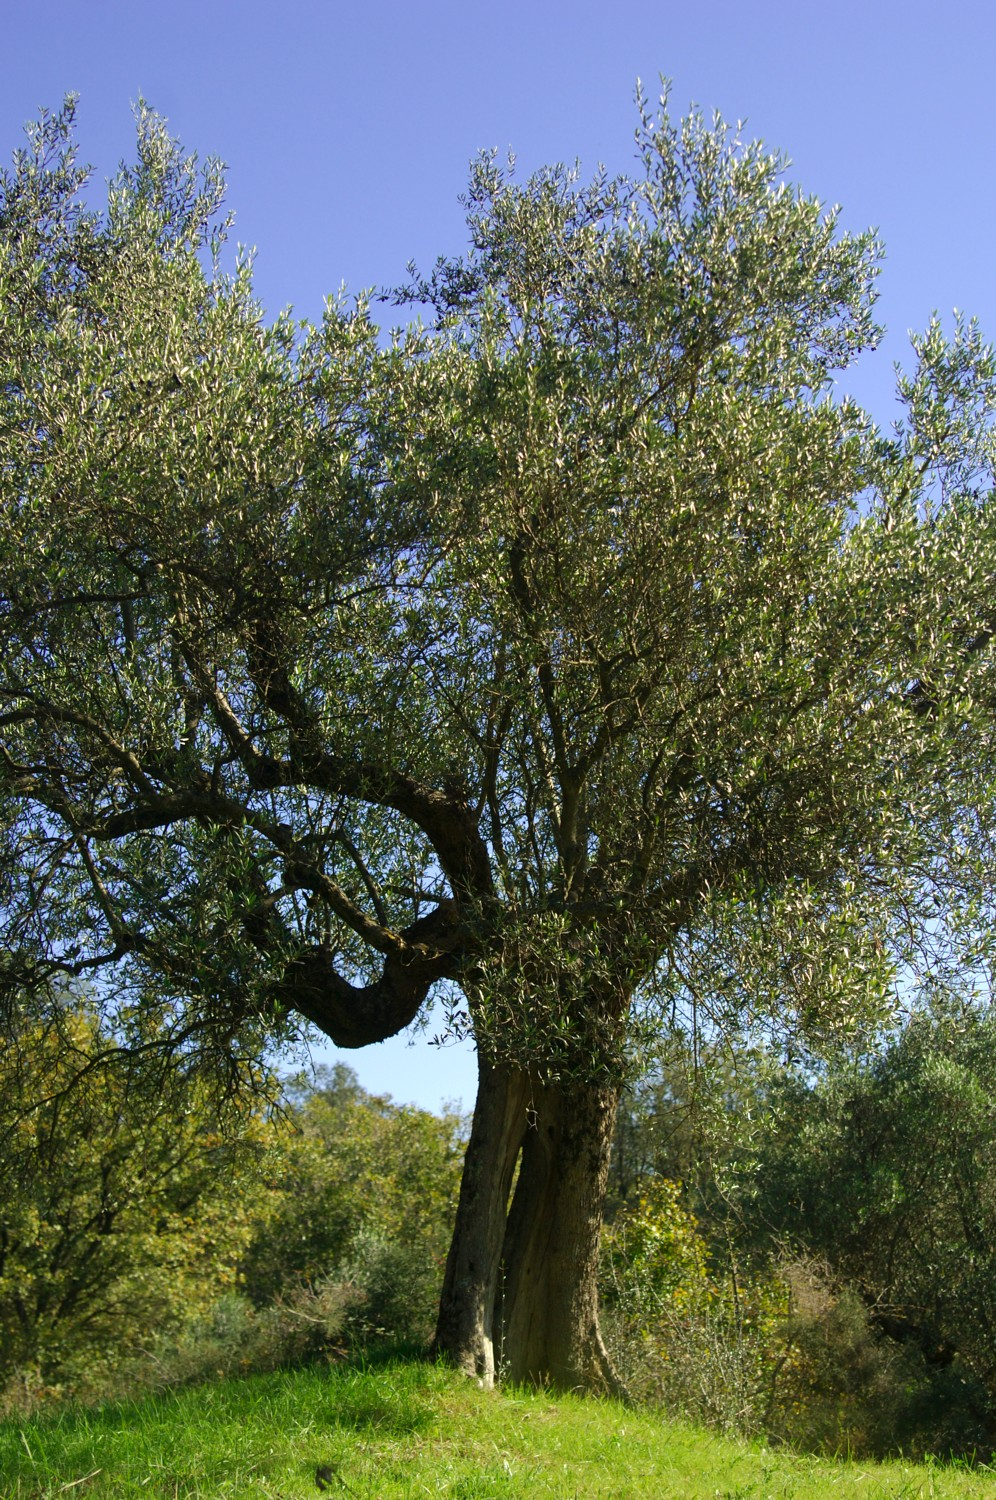 Adopt olive trees agriturismo villa la rogaia the olive tree is one of the oldest cultivated plants of humanity buycottarizona Choice Image